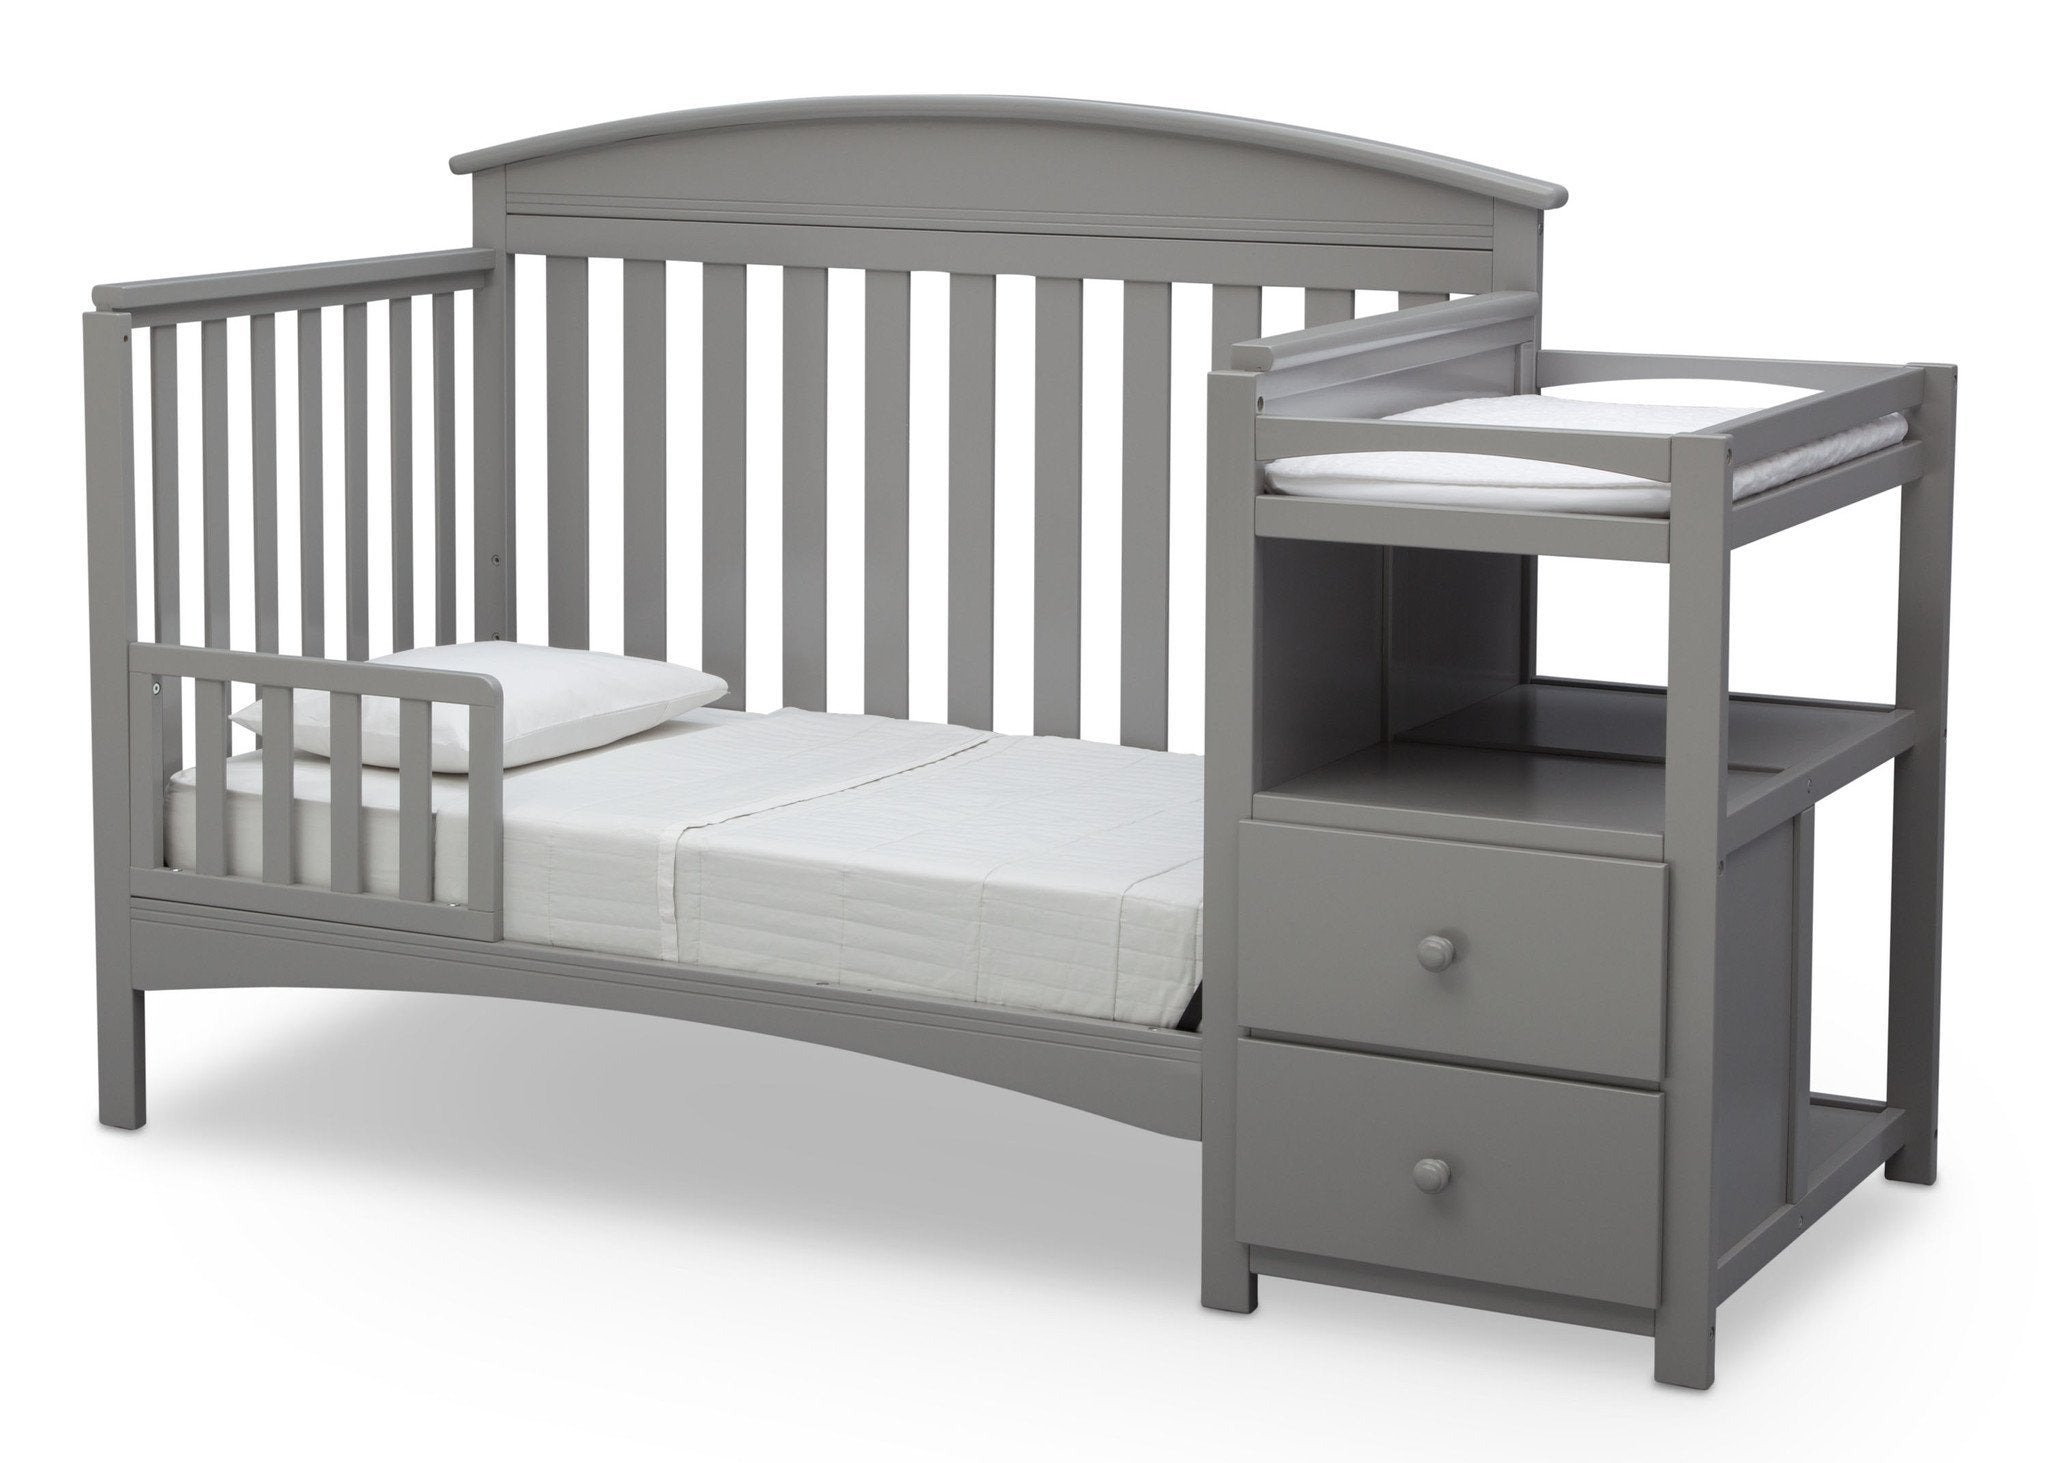 Delta Children Grey (026) Abby Crib N Changer, Toddler bed a4a